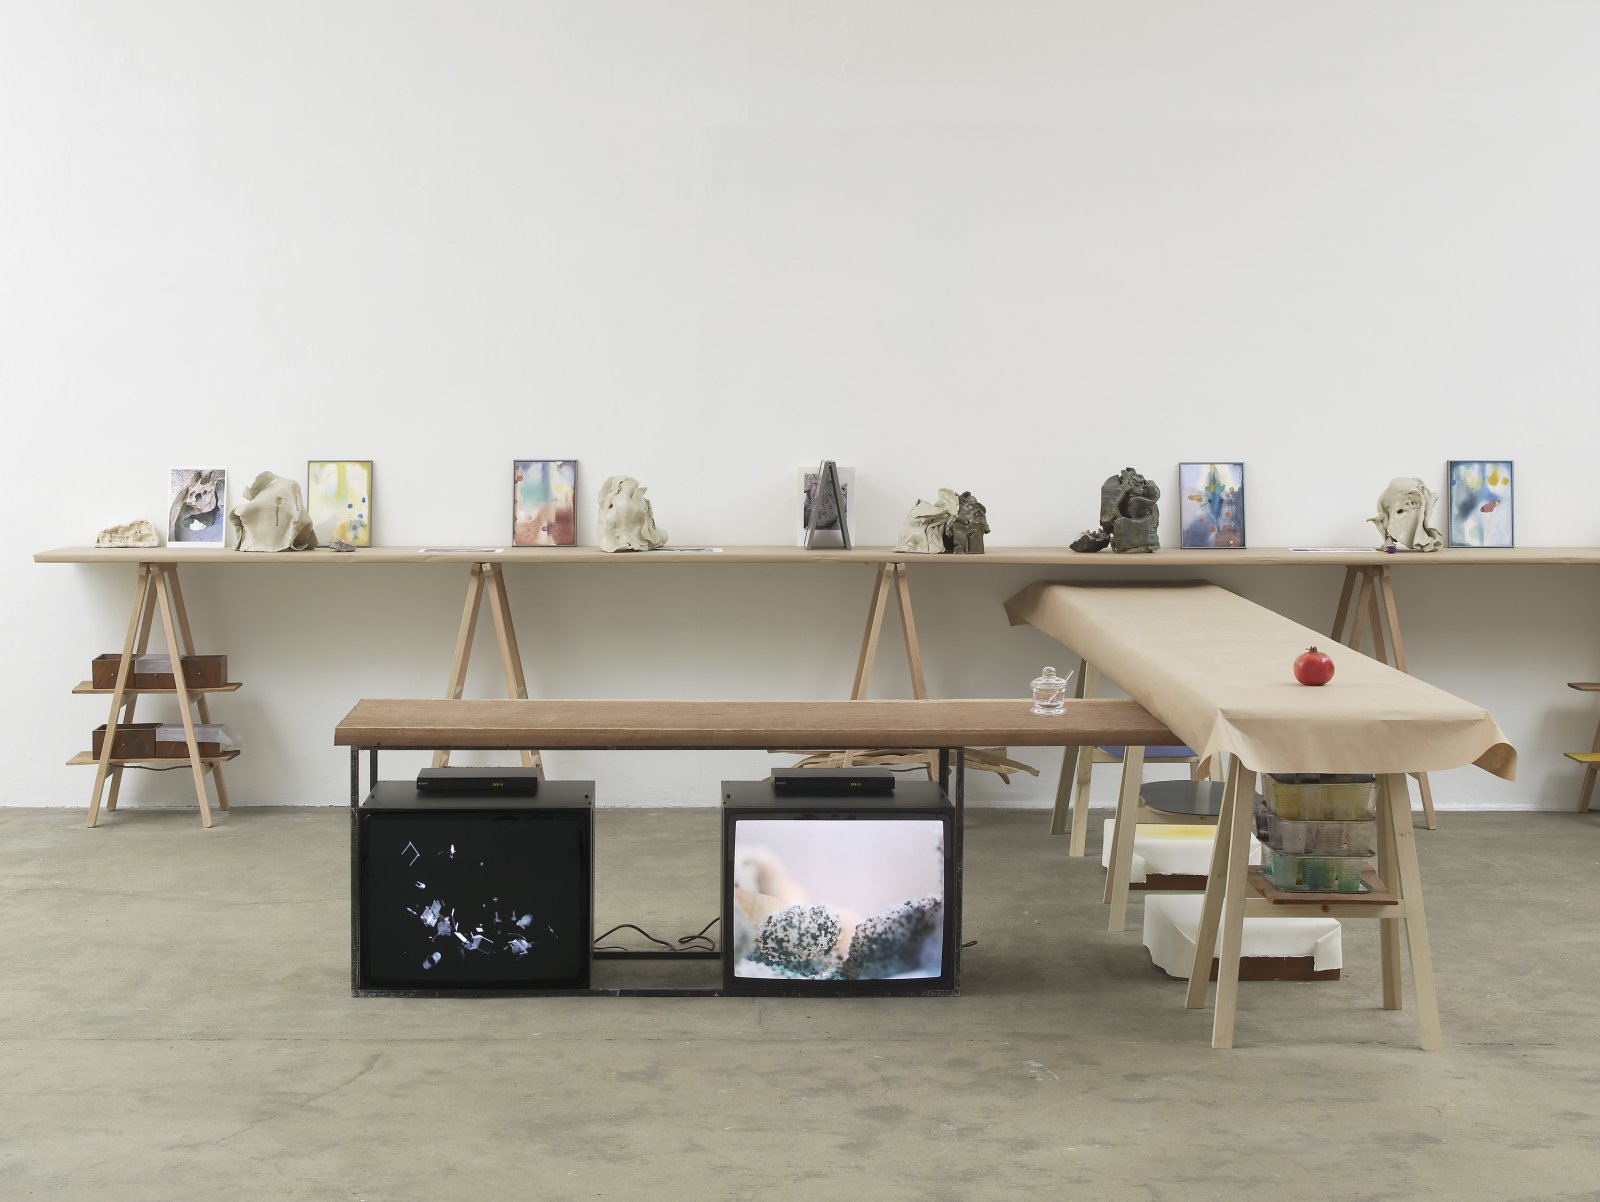 Christina Mackie, Fall Force and Planet, 2012, hantarax monitors, mahogany, glass jar, 2 DVDs, 4 minutes and 8 minutes, dimensions variable. Installation view, Painting the Weights, Chisenhale Gallery, London, UK, 2012 by Christina Mackie